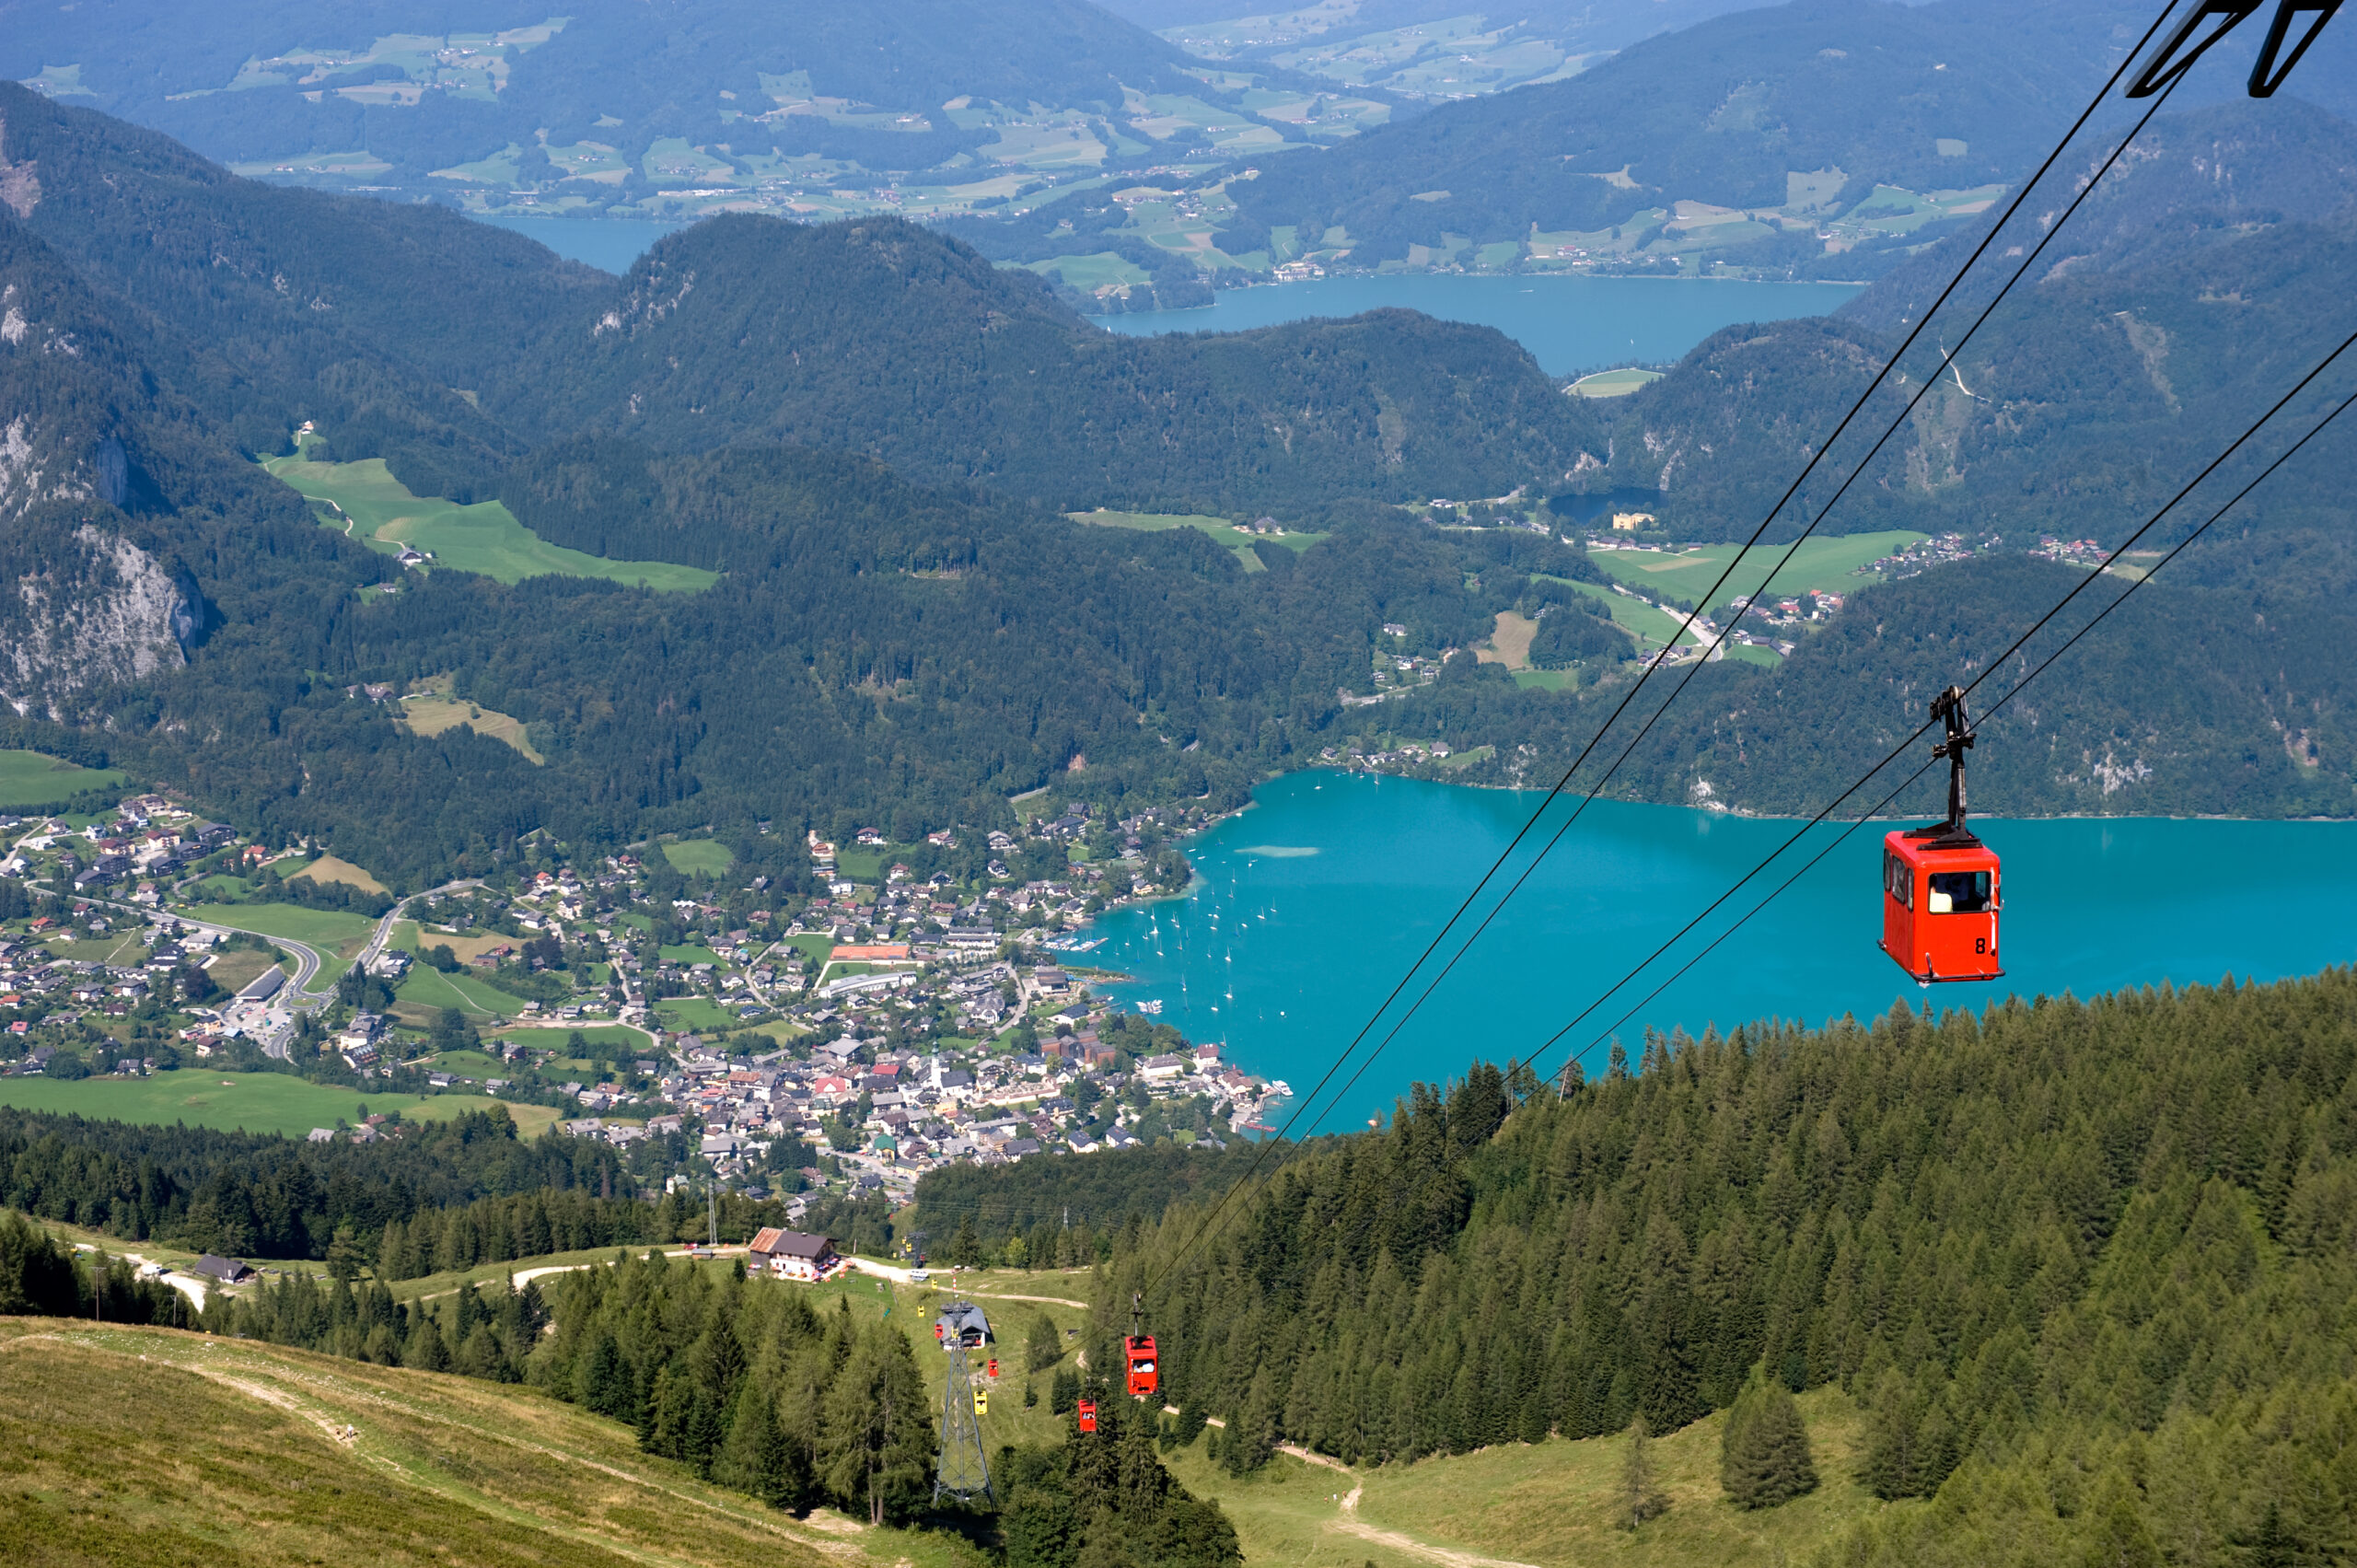 Photo of bright red cable car ascending an Alpine mountain. Small Austrian town with mountains and a brilliant blue lake are featured in the background.